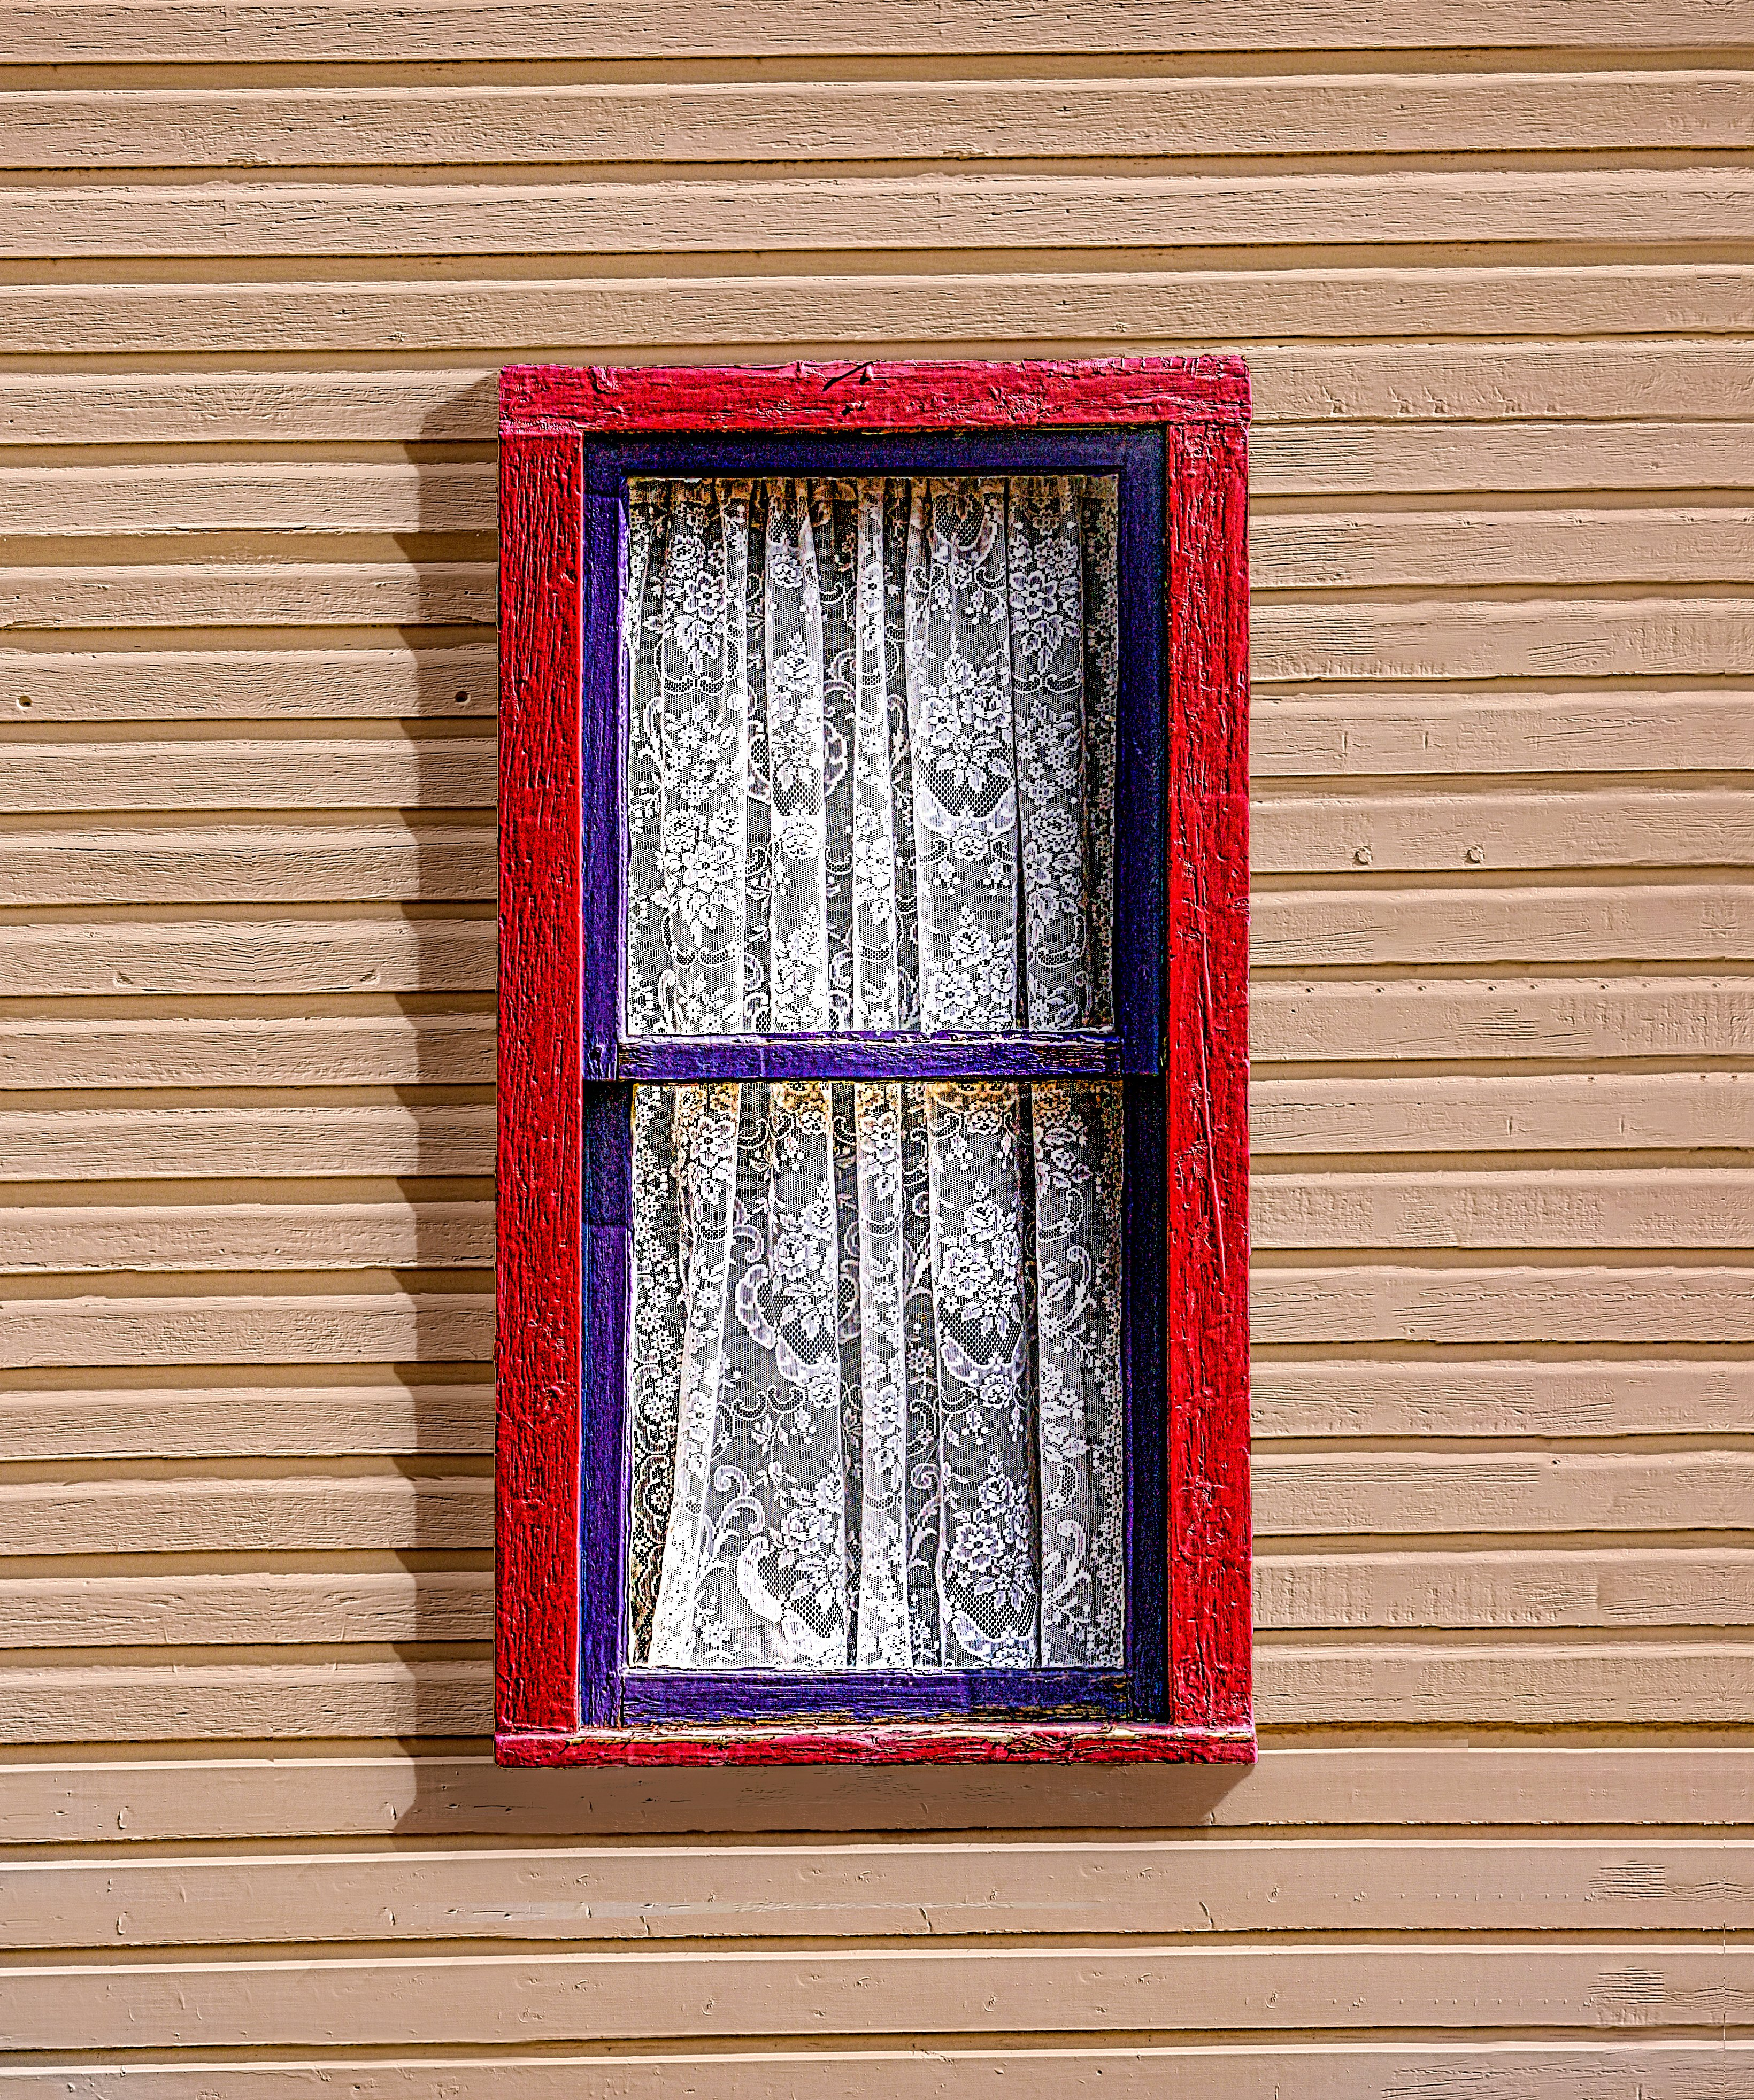 LACEY - Windows are often great photo subjects. Though simple, this one had it all... color, texture in the old siding and trim and of course, the lace.